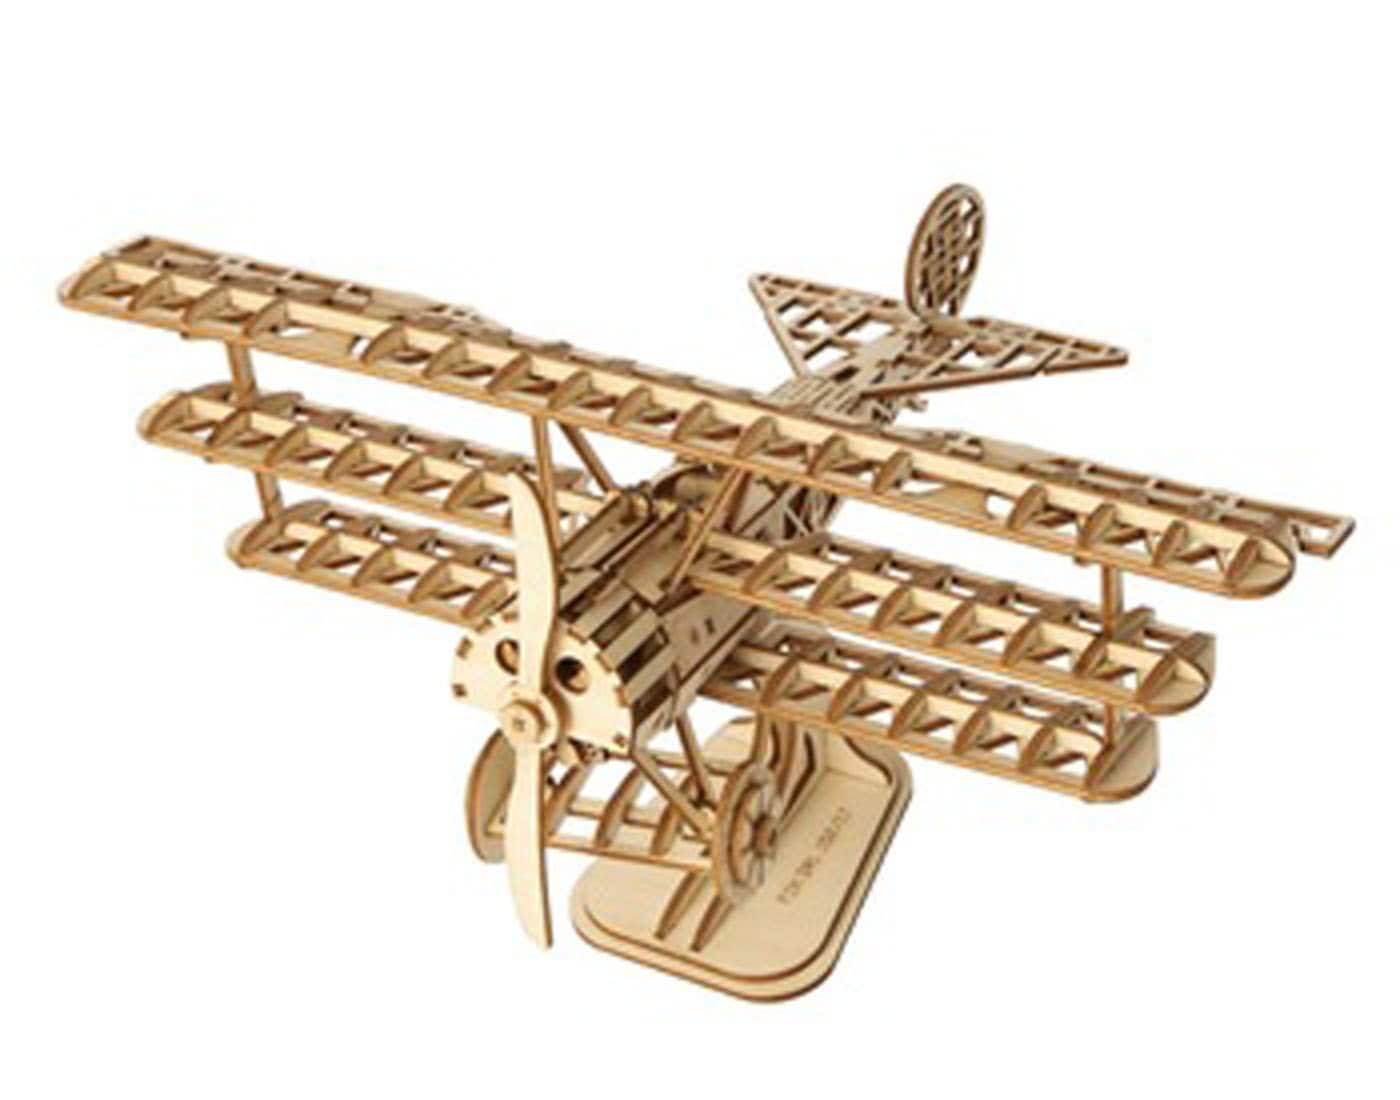 ROBOTIME 3D Wooden Puzzle Toy Wooden Bi-Plane Craft Kits for $8.39 Free Shipping